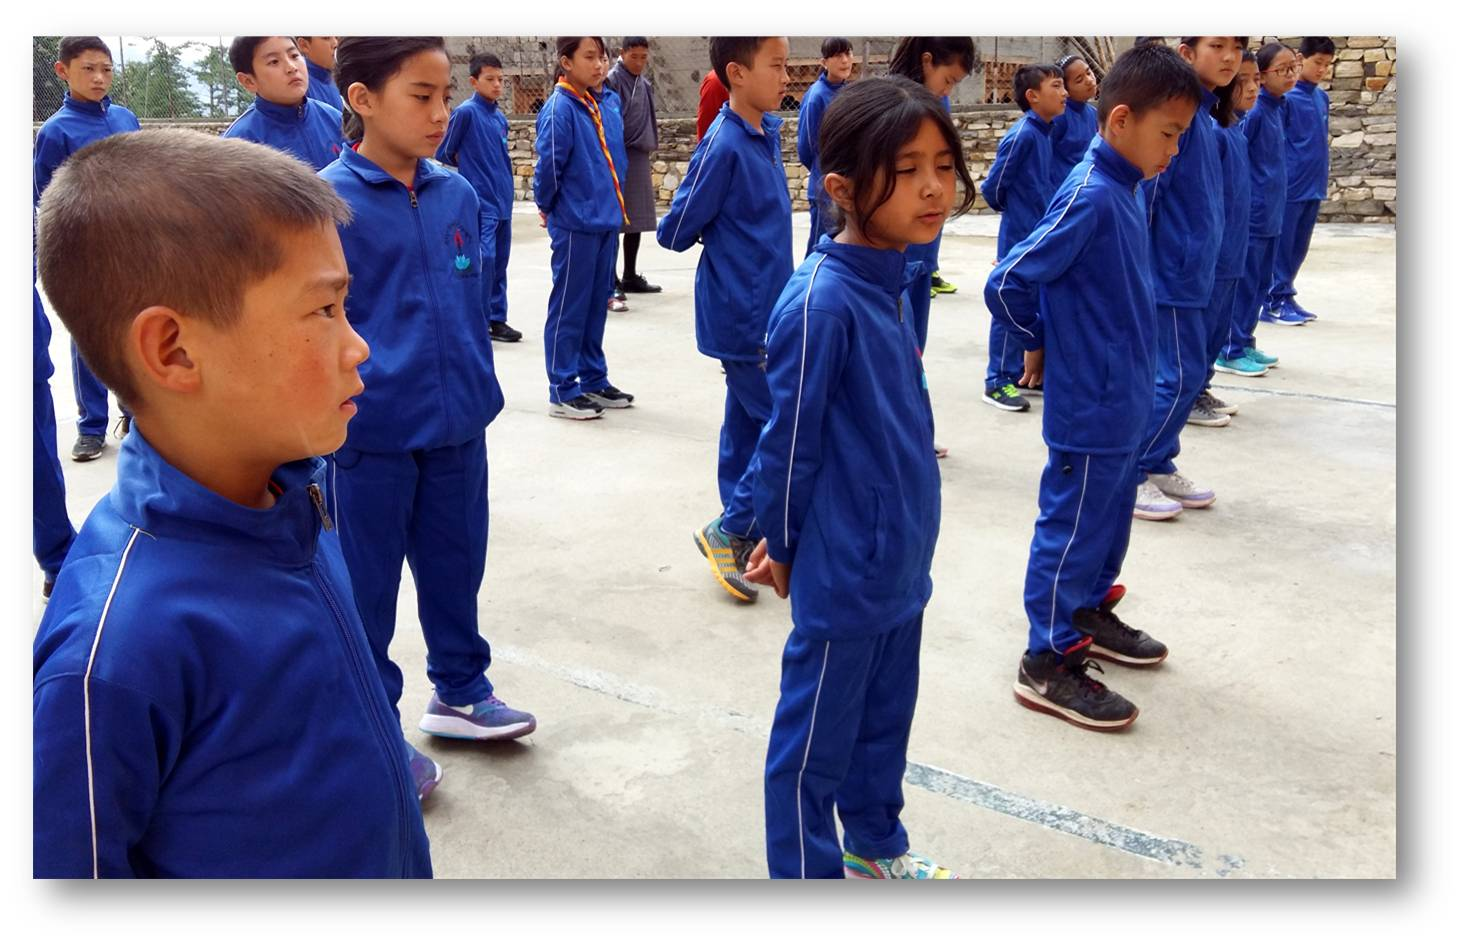 Children in newly arrived track suit